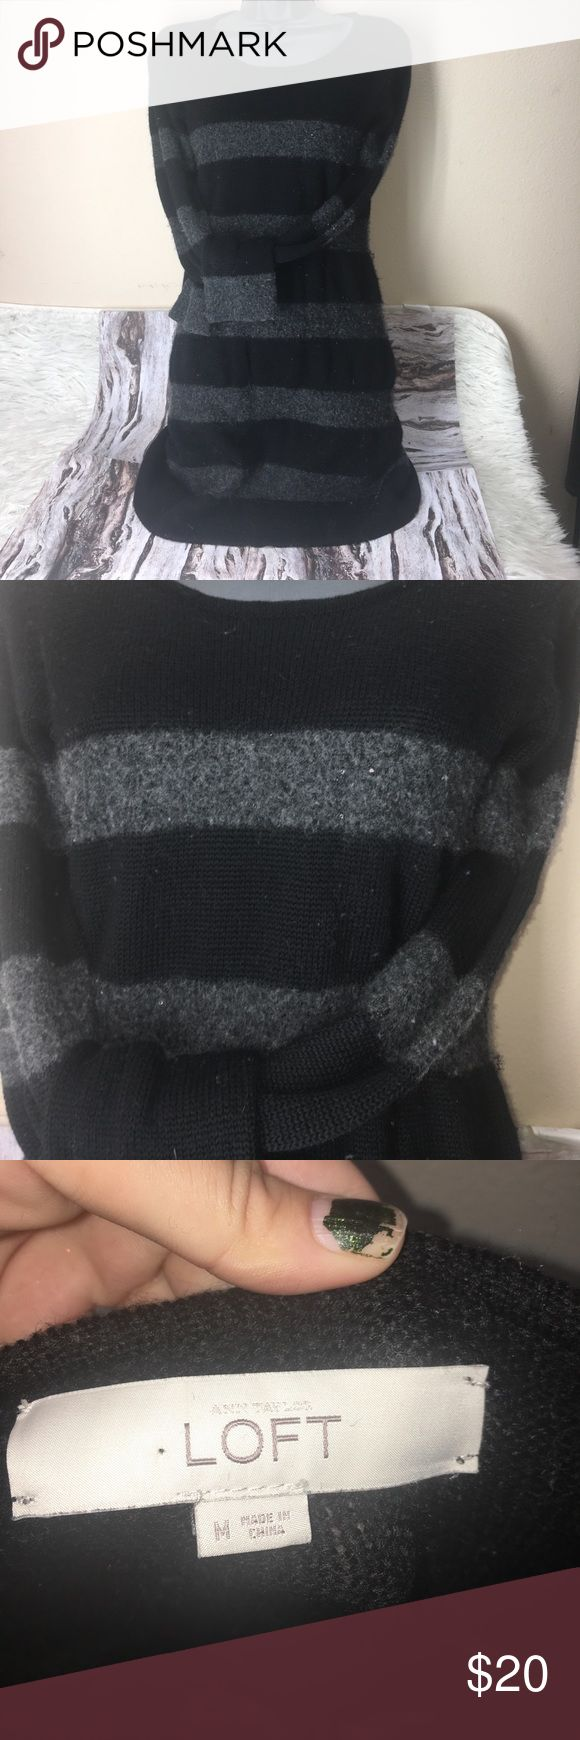 Loft striped sequin detail sweater dress Great condition but is very fuzzy due to the fabric. Just needs to be gone over with a sweater shaver. Black and grey stripes. Grey has small silver sequins sewn in hard to see in pics but cute in person. Great casual holiday dress. Would be cute with tights and knee high boots LOFT Dresses Long Sleeve